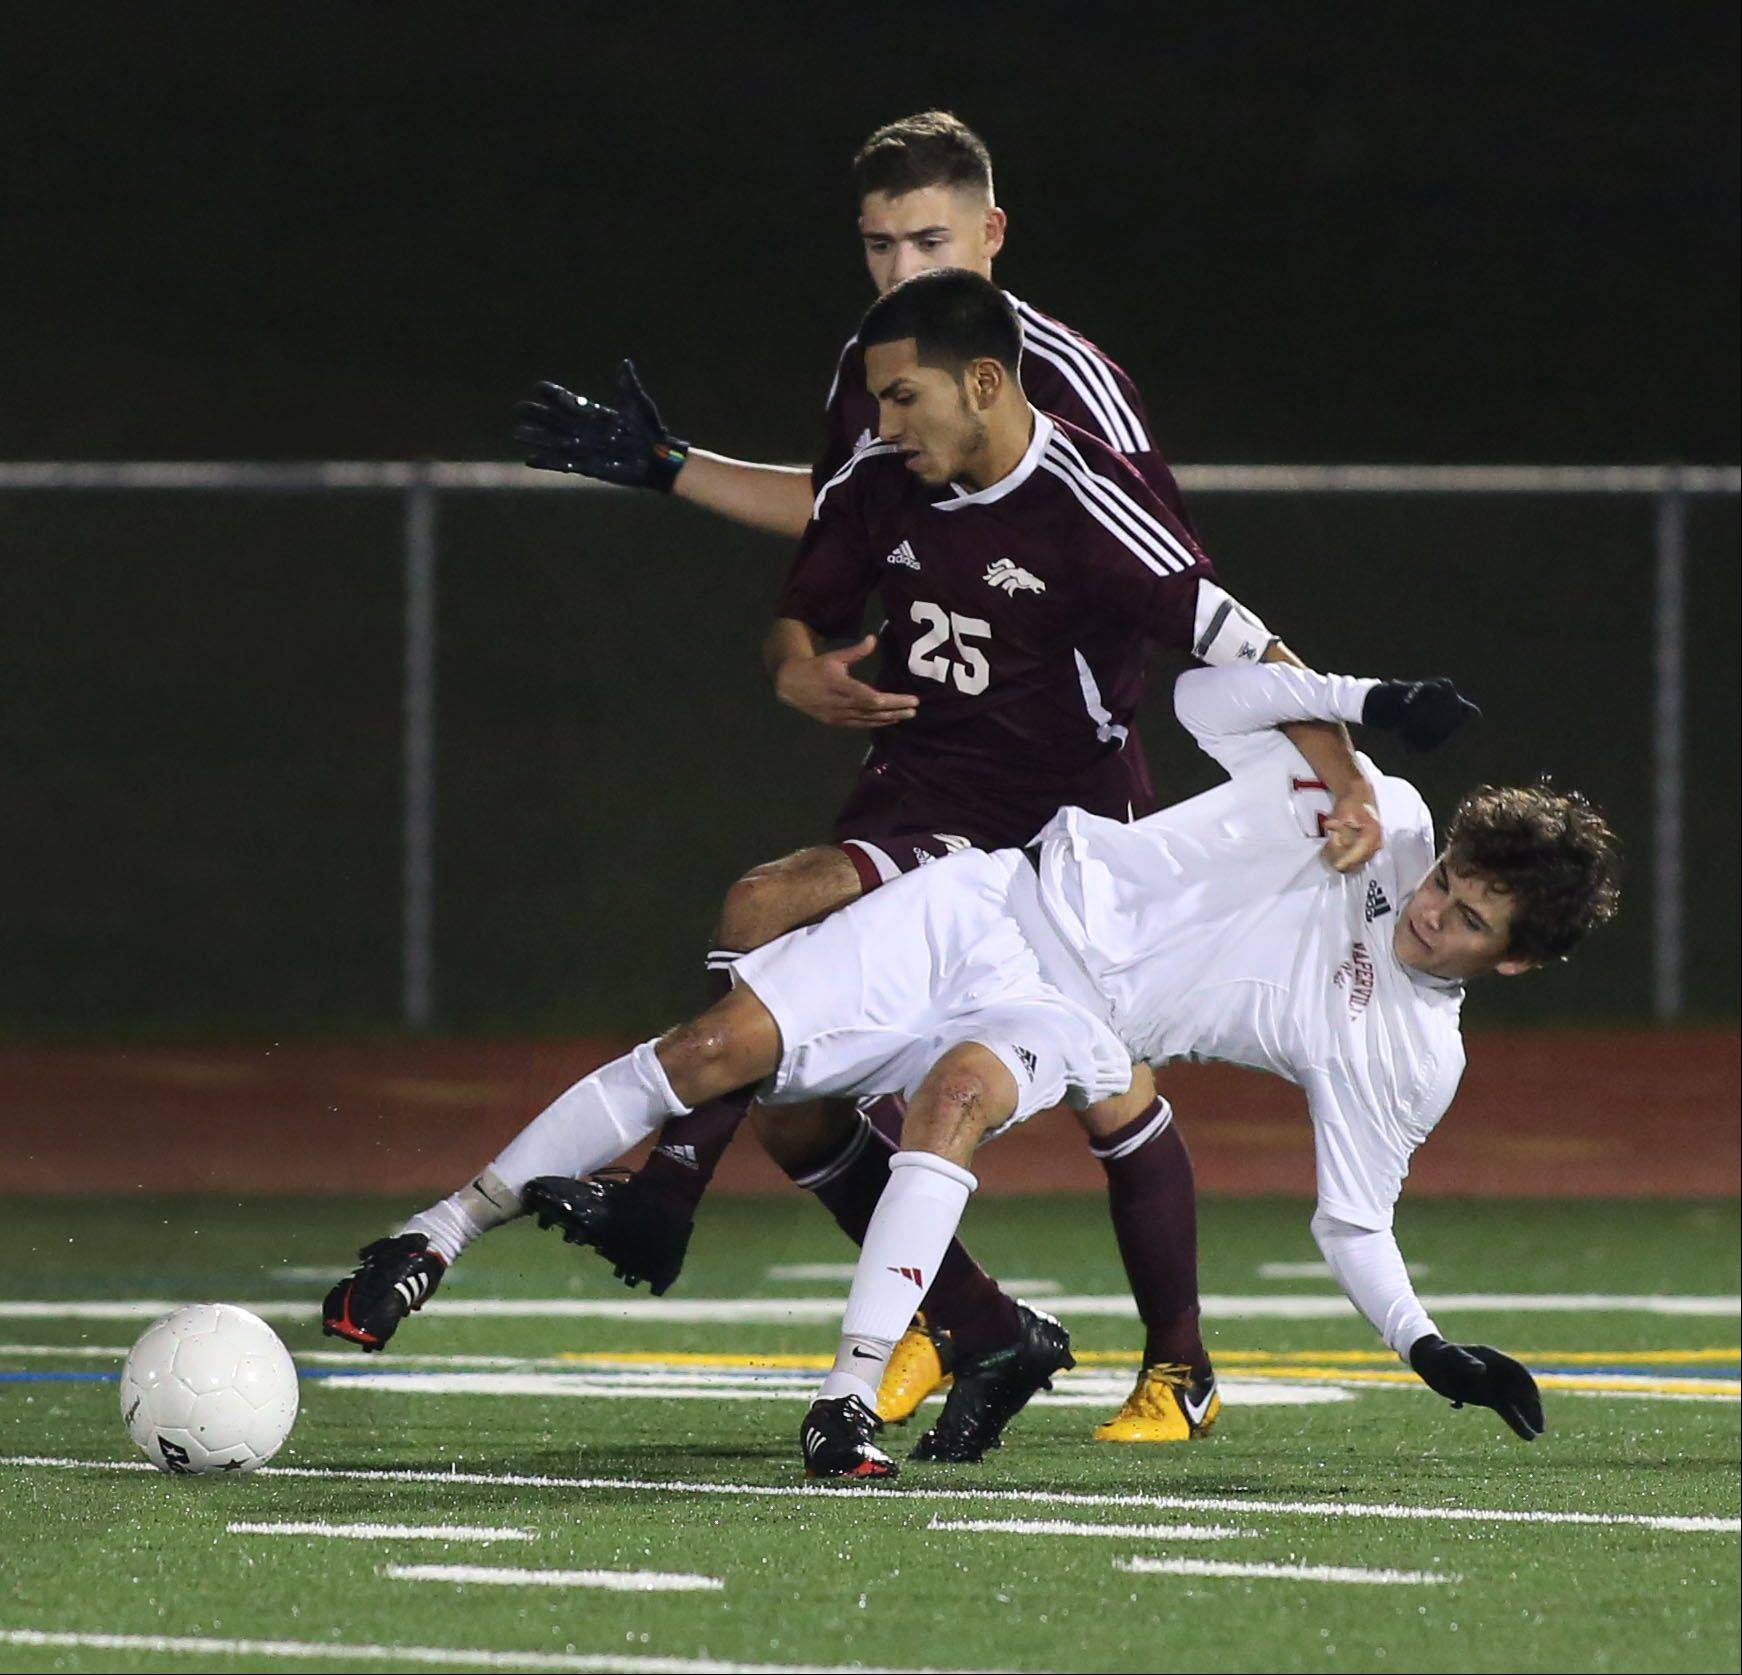 David Murphy of Naperville Central gets tripped up by Edgar Garcia, left, of Morton during Class 3A super-sectional soccer in Romeoville on Tuesday.